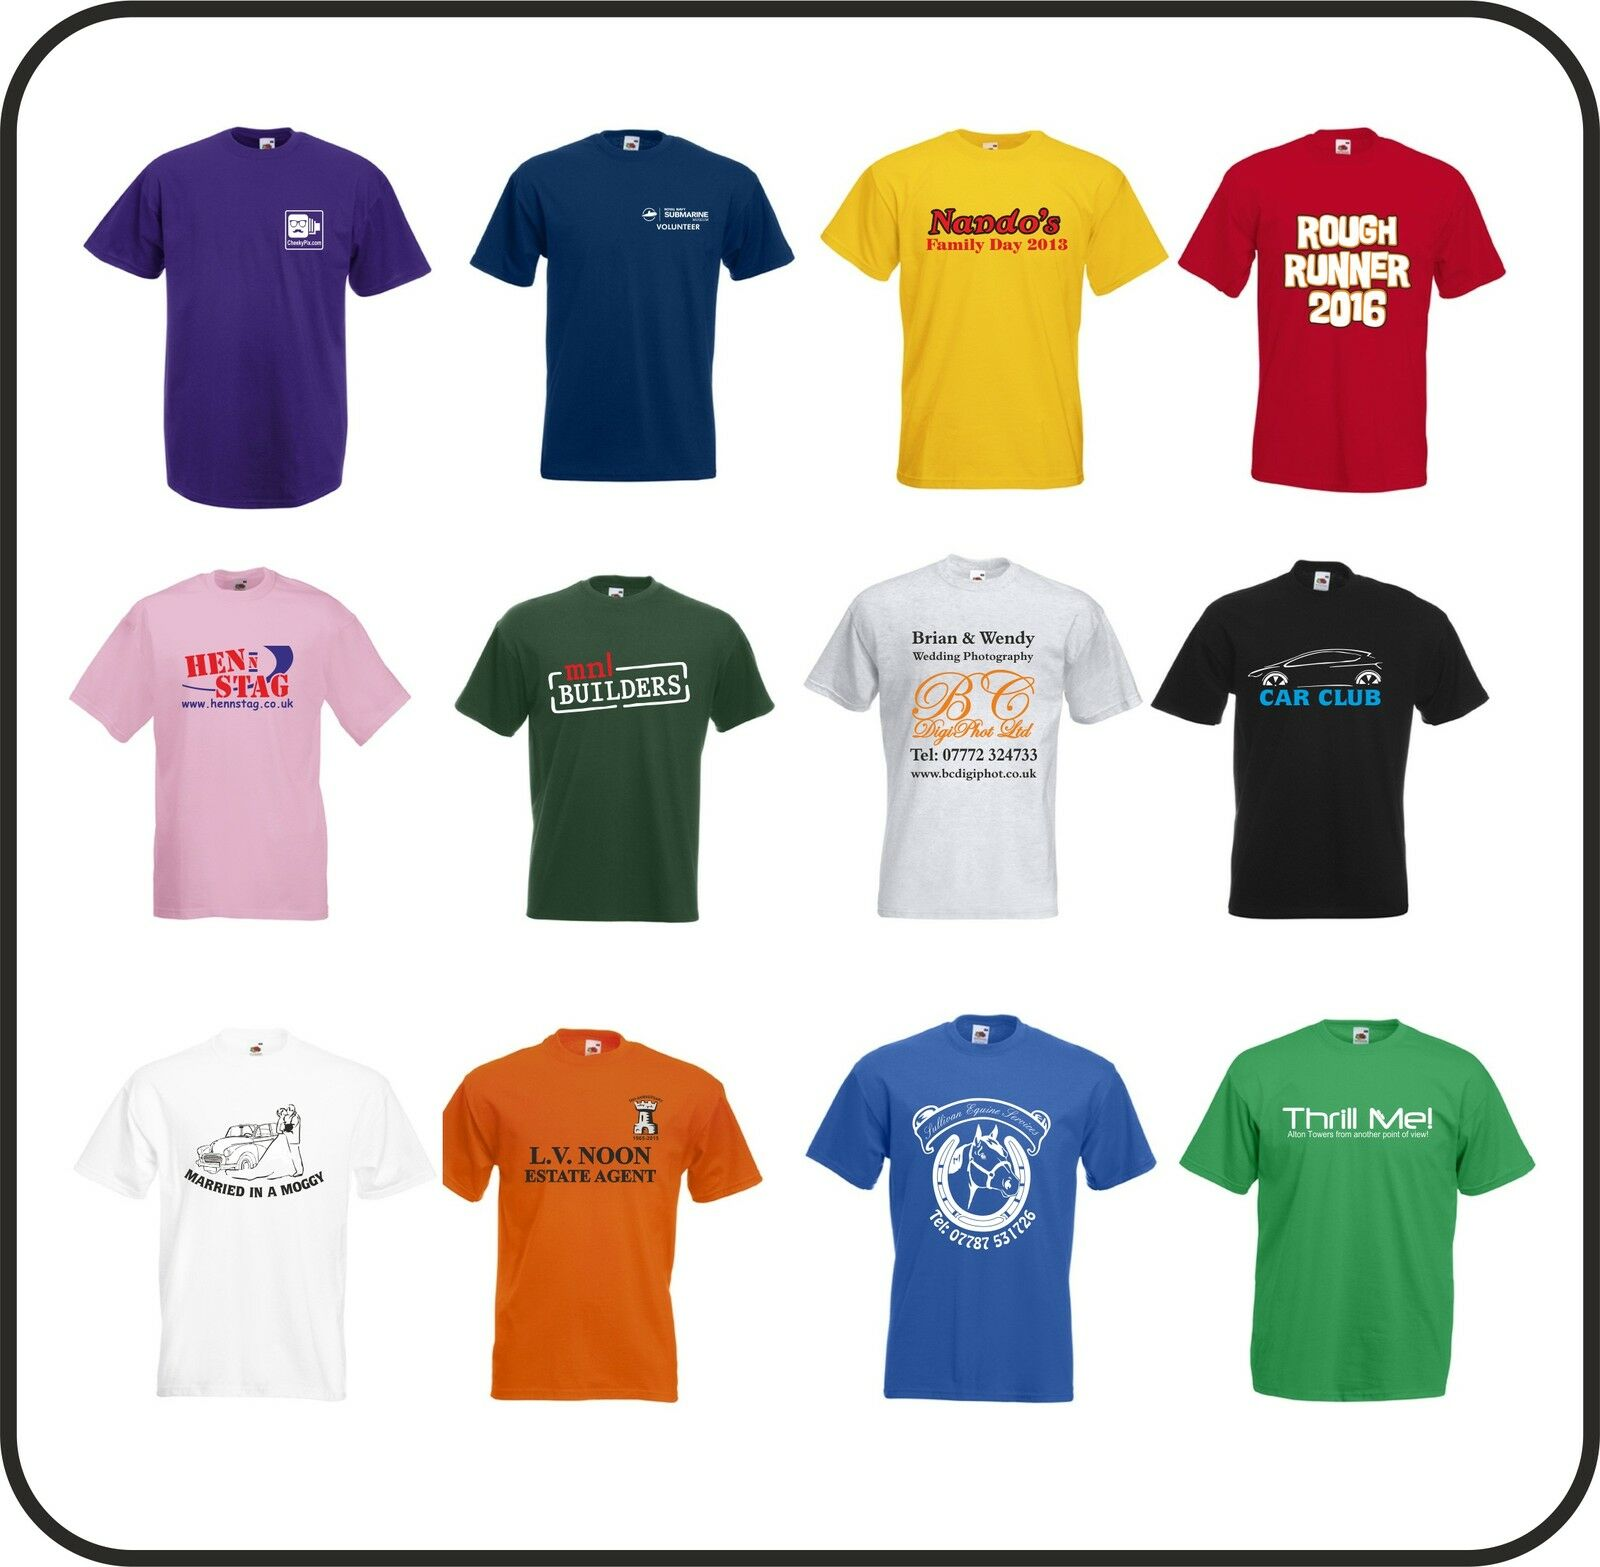 SPECIAL SPECIAL SPECIAL DEAL 12 Printed Personalised T-shirts Stag Holiday Workwear Party 9ebf54